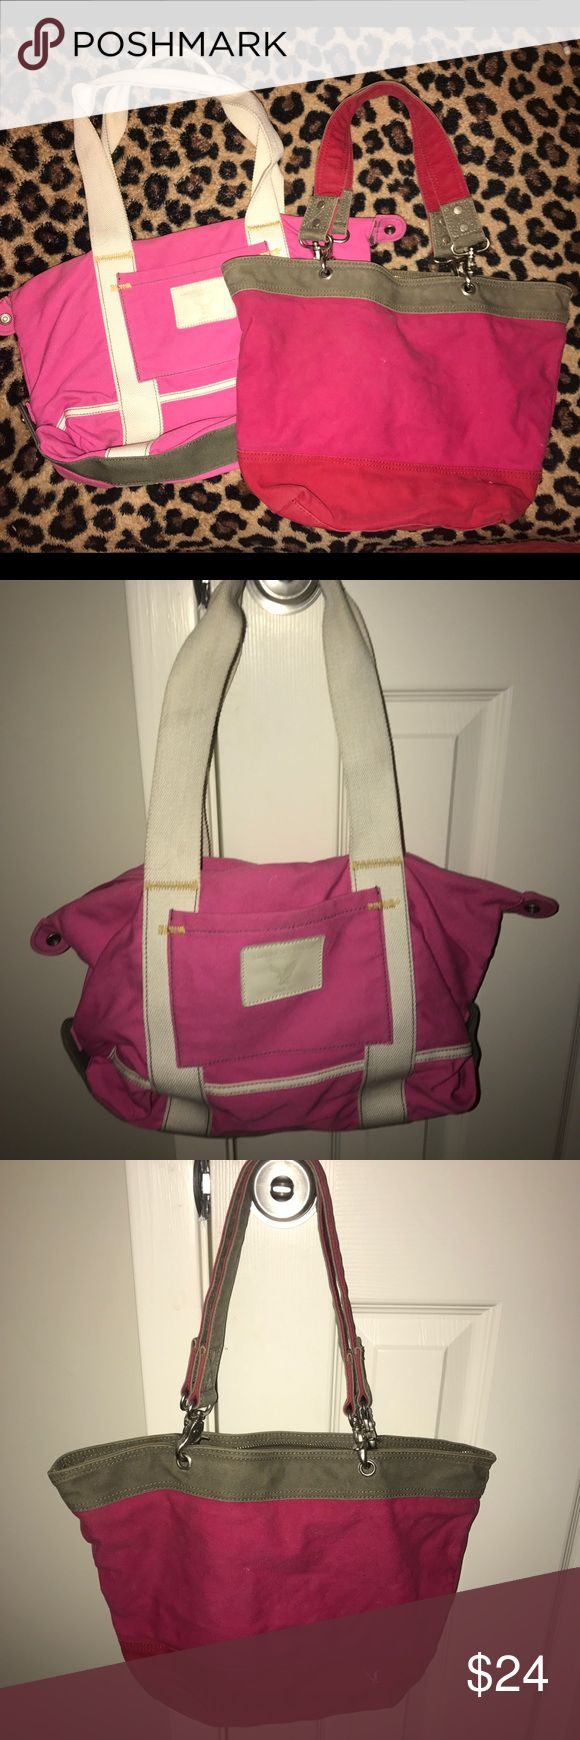 Set of 2 American Eagle handbags Great condition! American Eagle Outfitters Bags